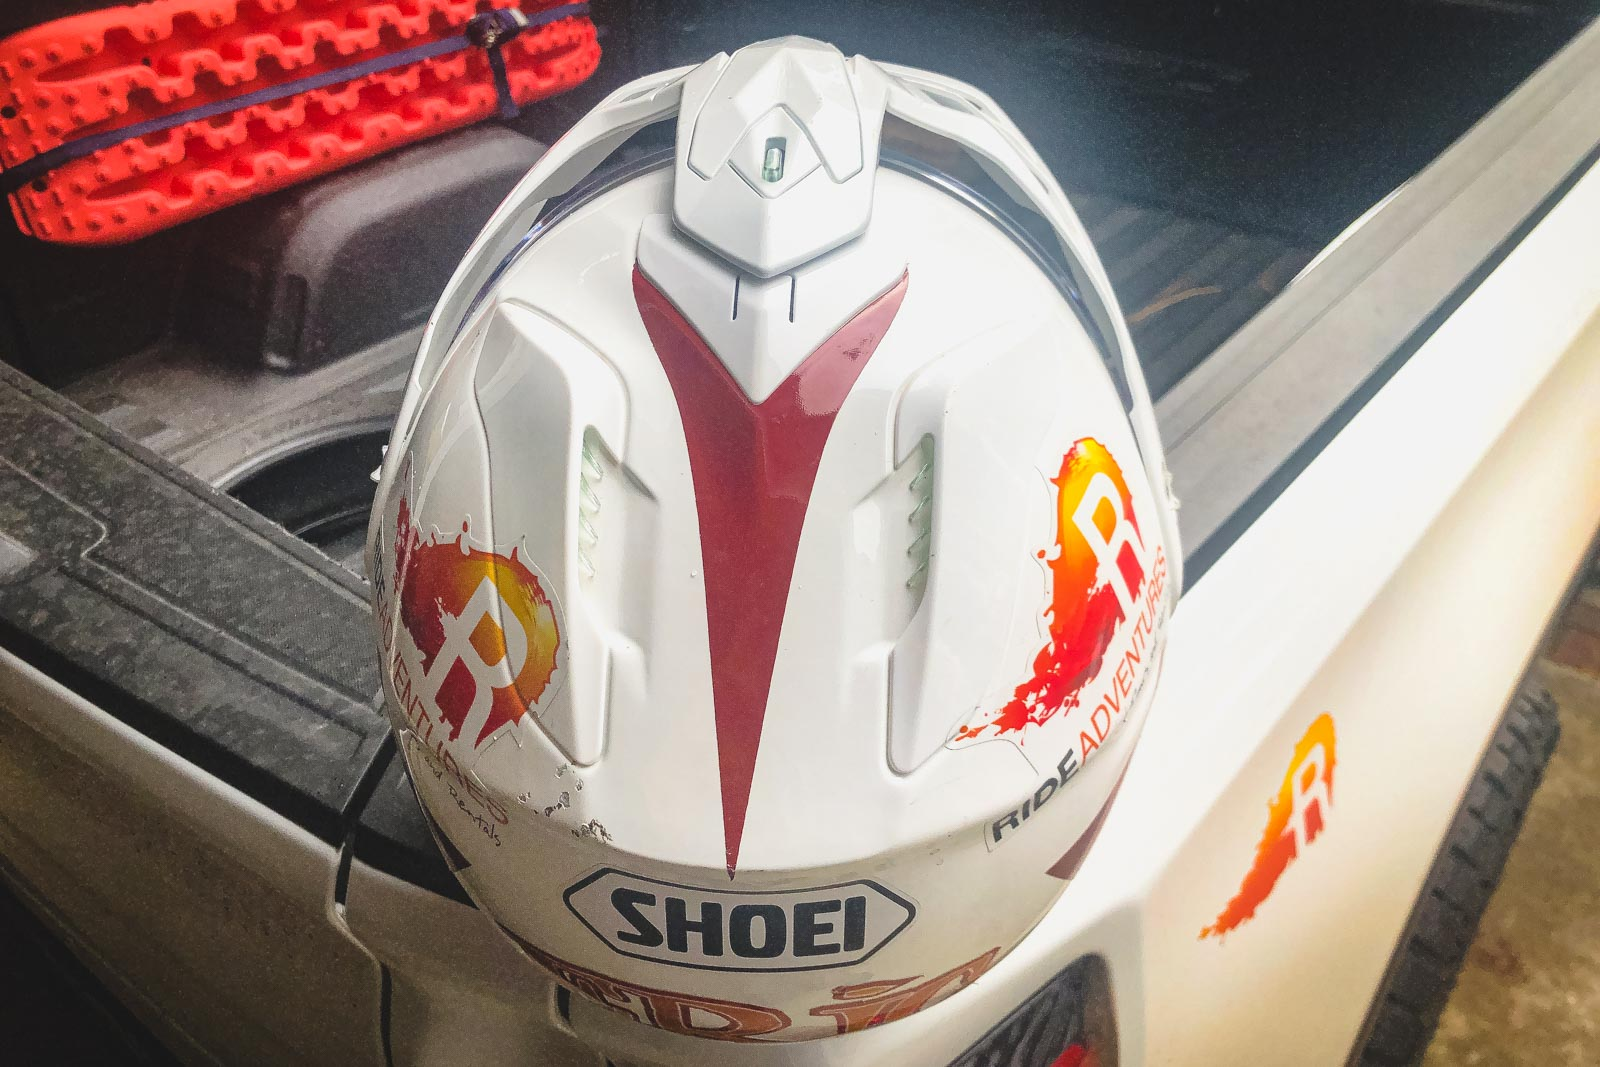 Shoei Hornet X2 from top and behind showing it's rear vents